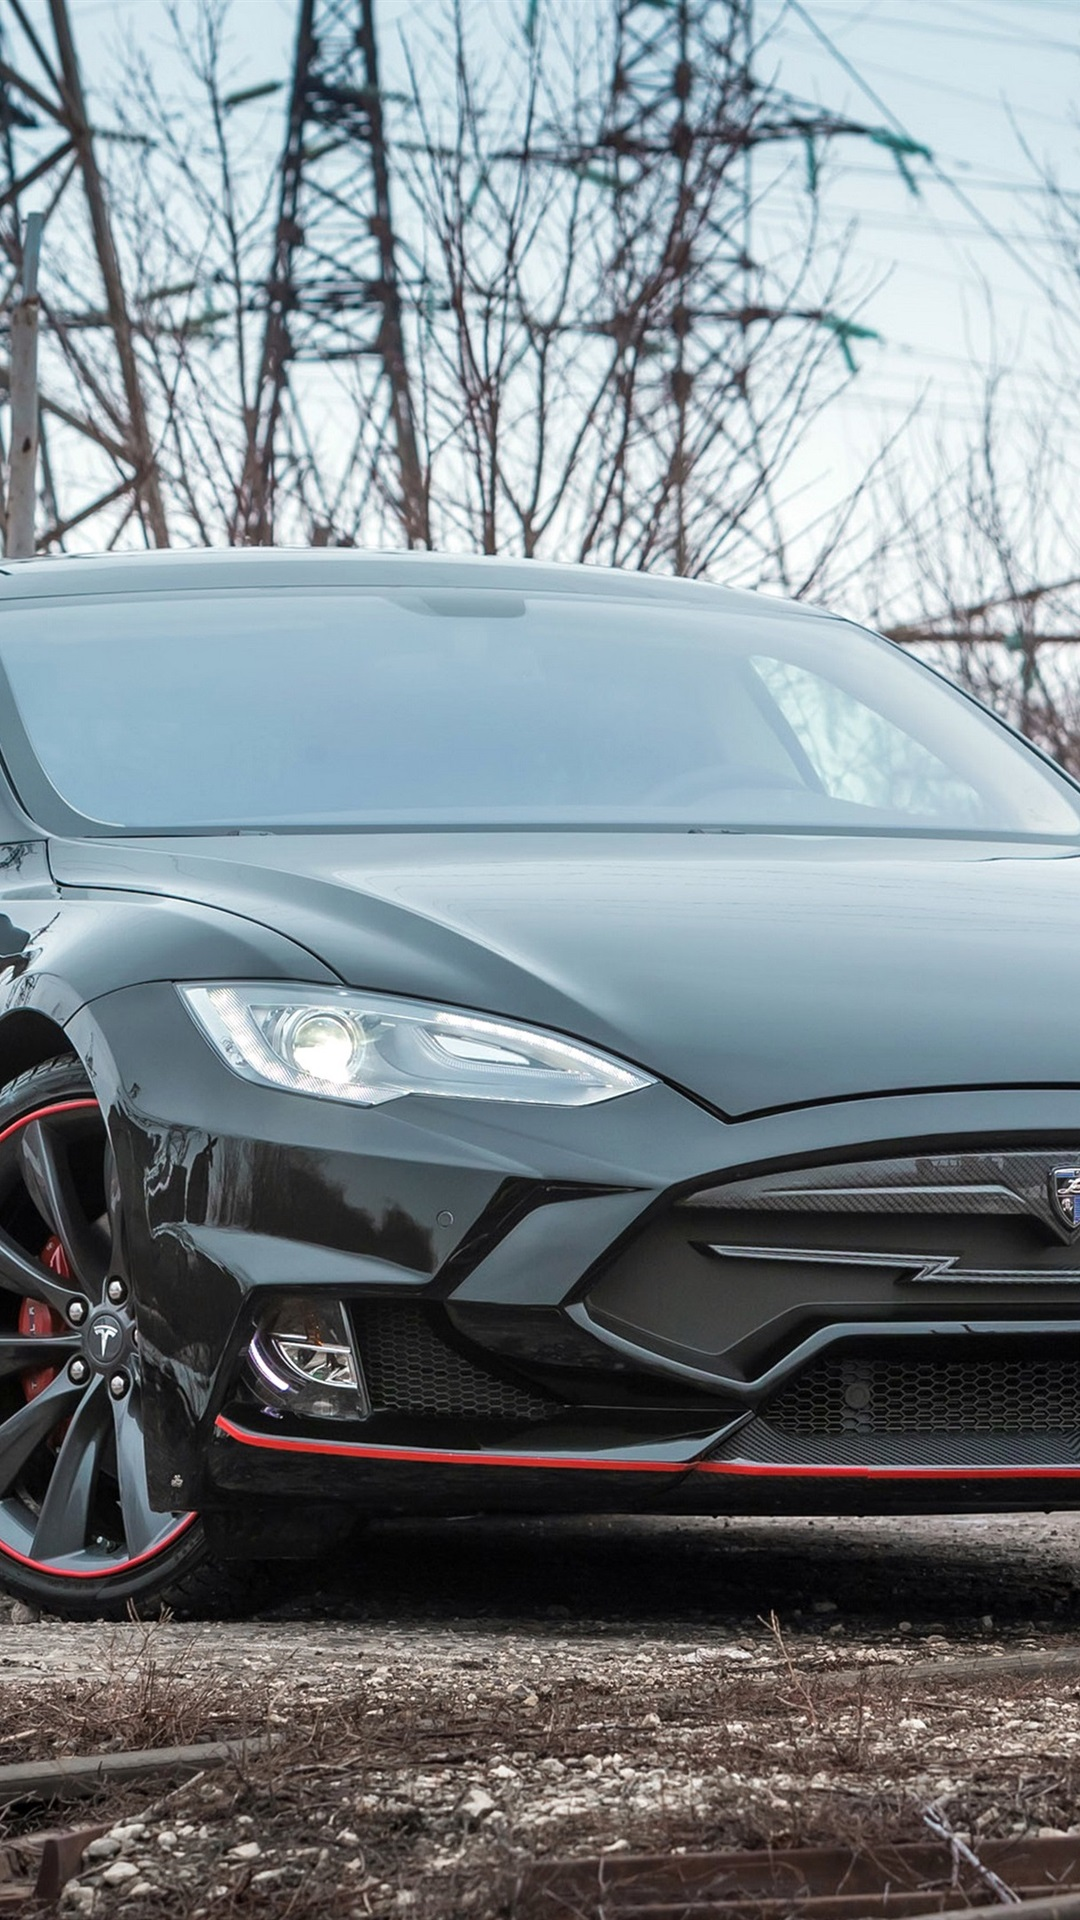 Tesla Model S Black Electric Car Front View 1080x1920 Iphone 8 7 6